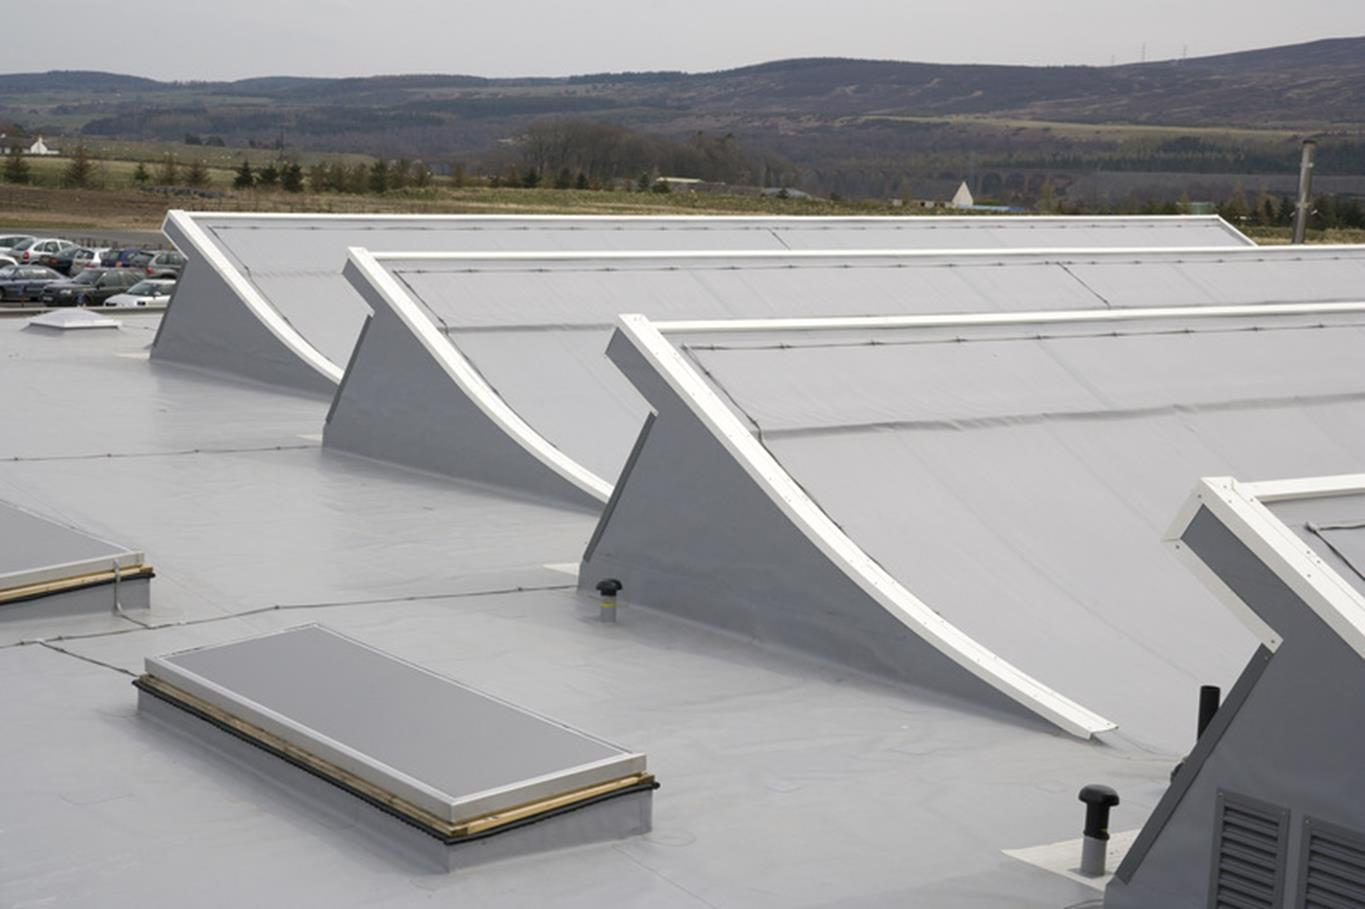 Membrane product being tested to extremes or in extreme weather, or a robust-looking roof